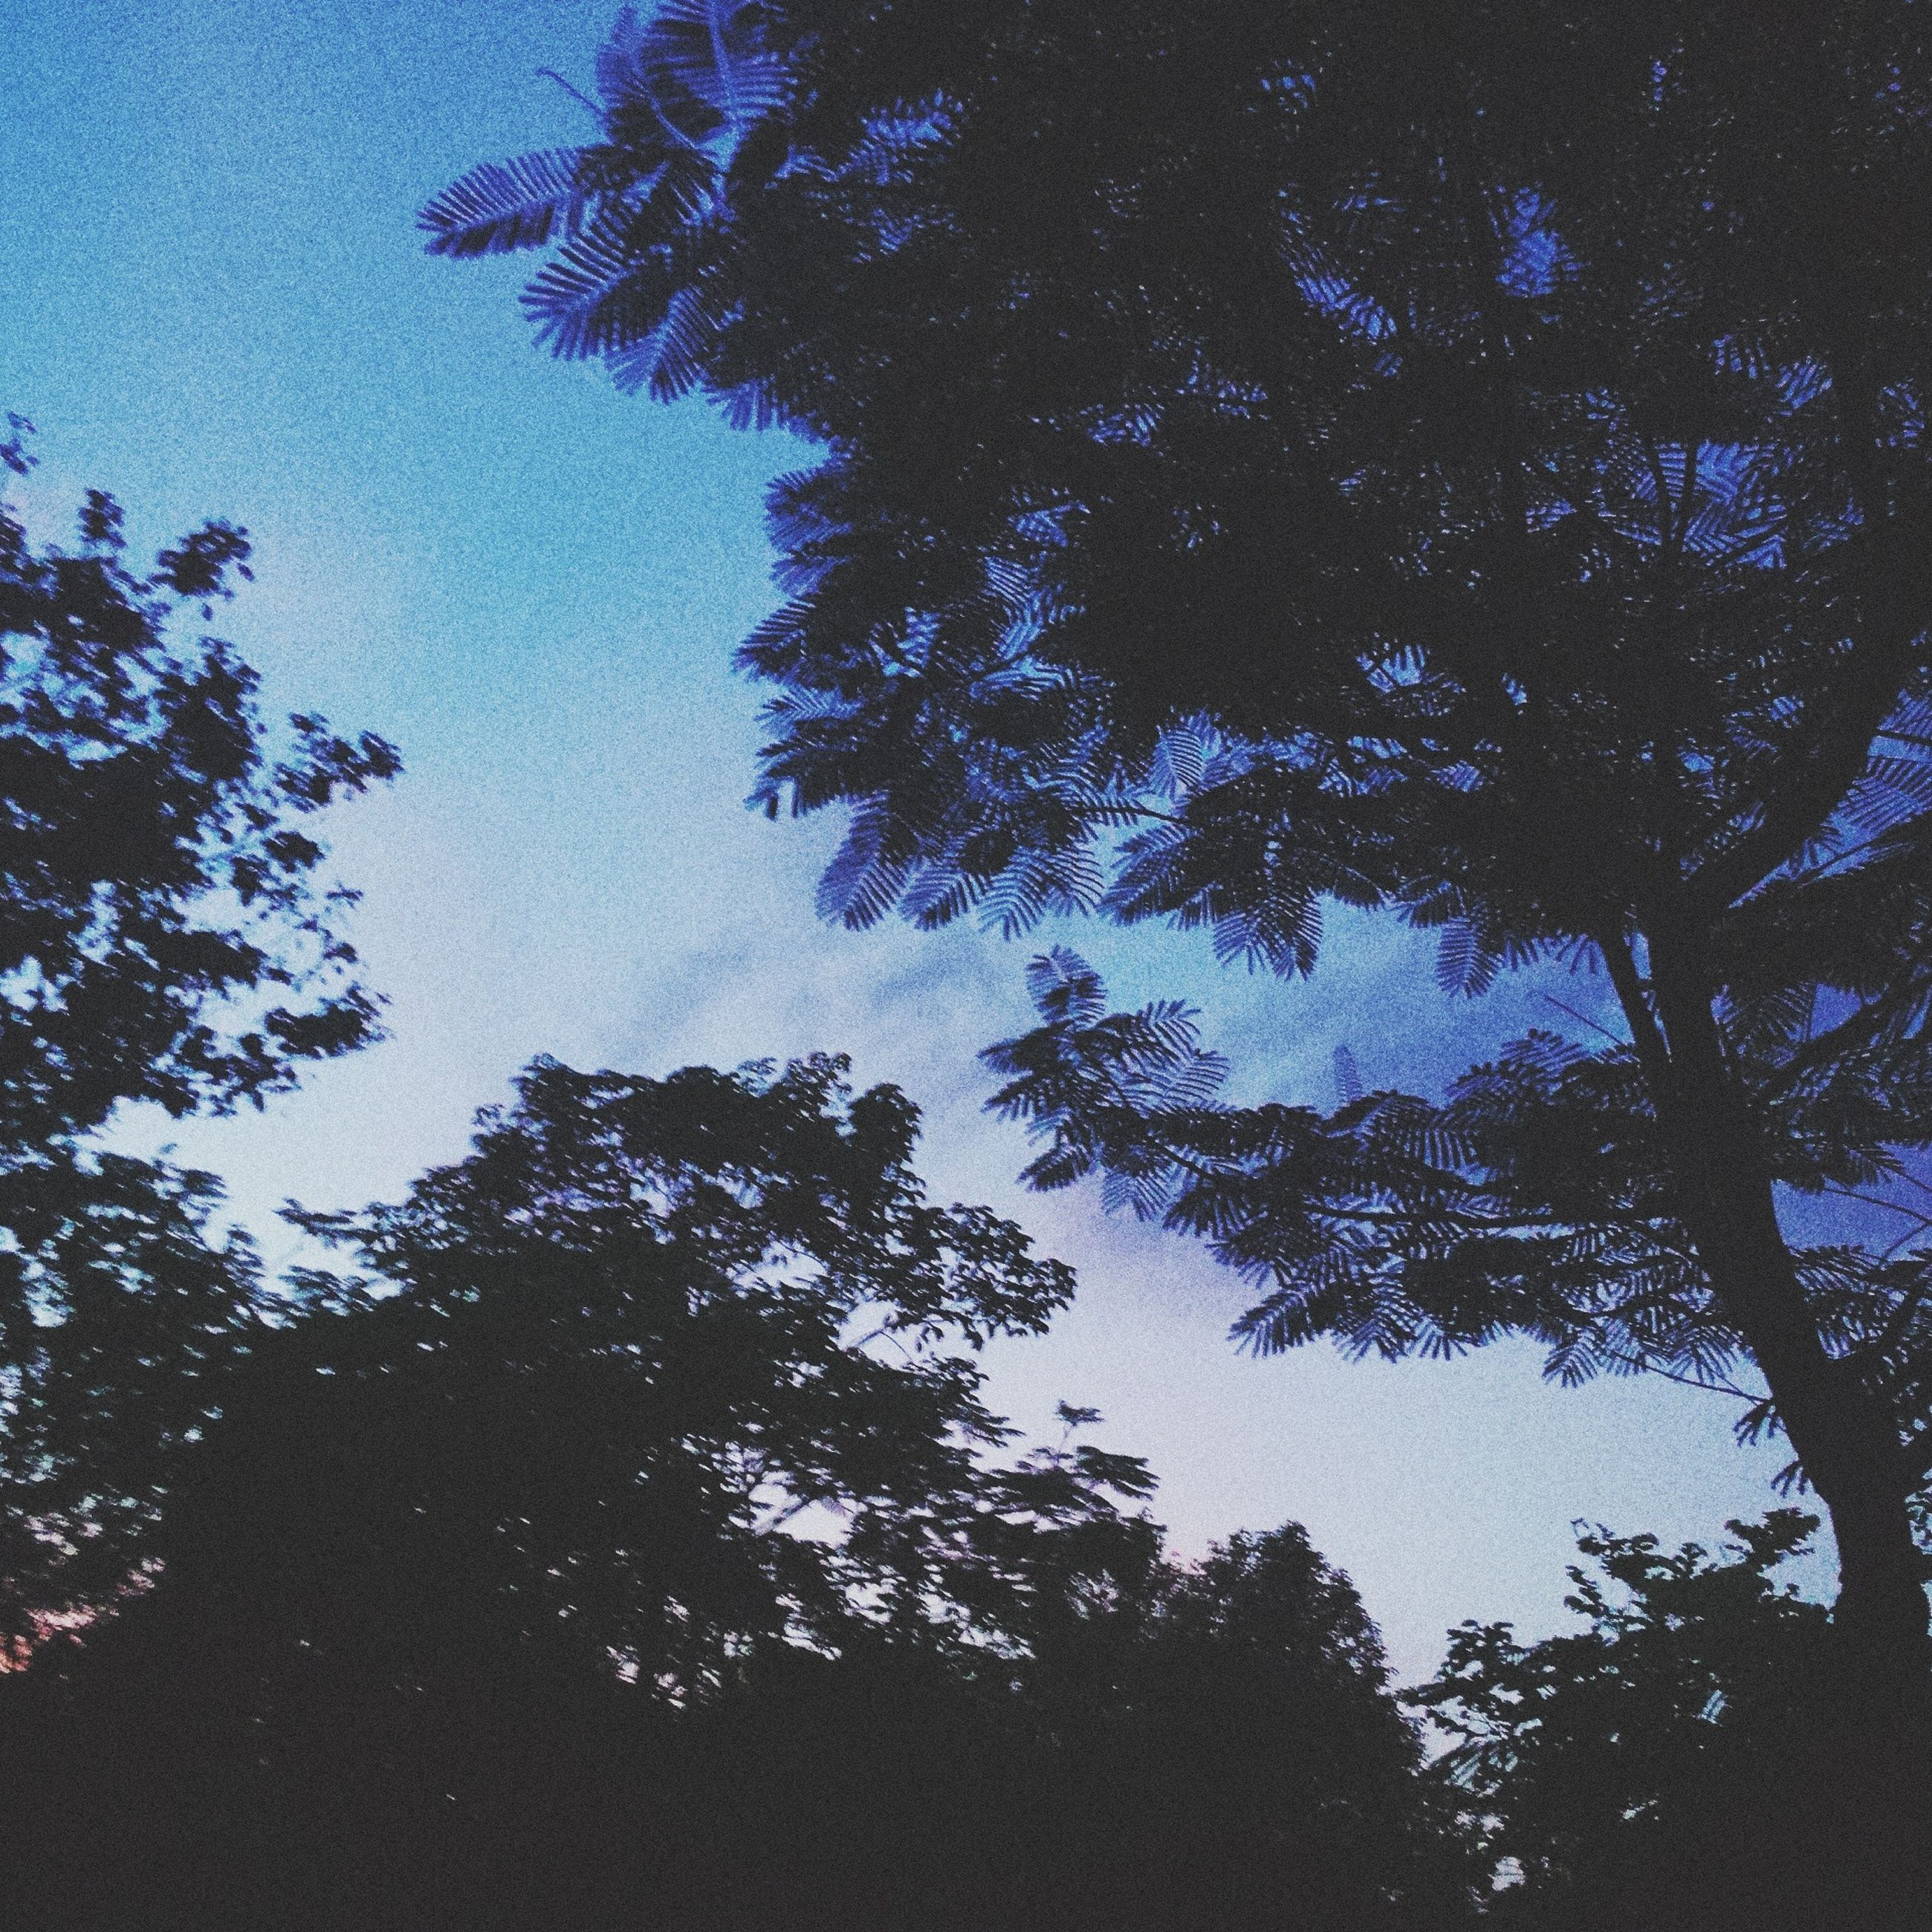 tree, low angle view, growth, branch, silhouette, tranquility, sky, nature, beauty in nature, blue, scenics, tranquil scene, clear sky, outdoors, no people, high section, day, idyllic, treetop